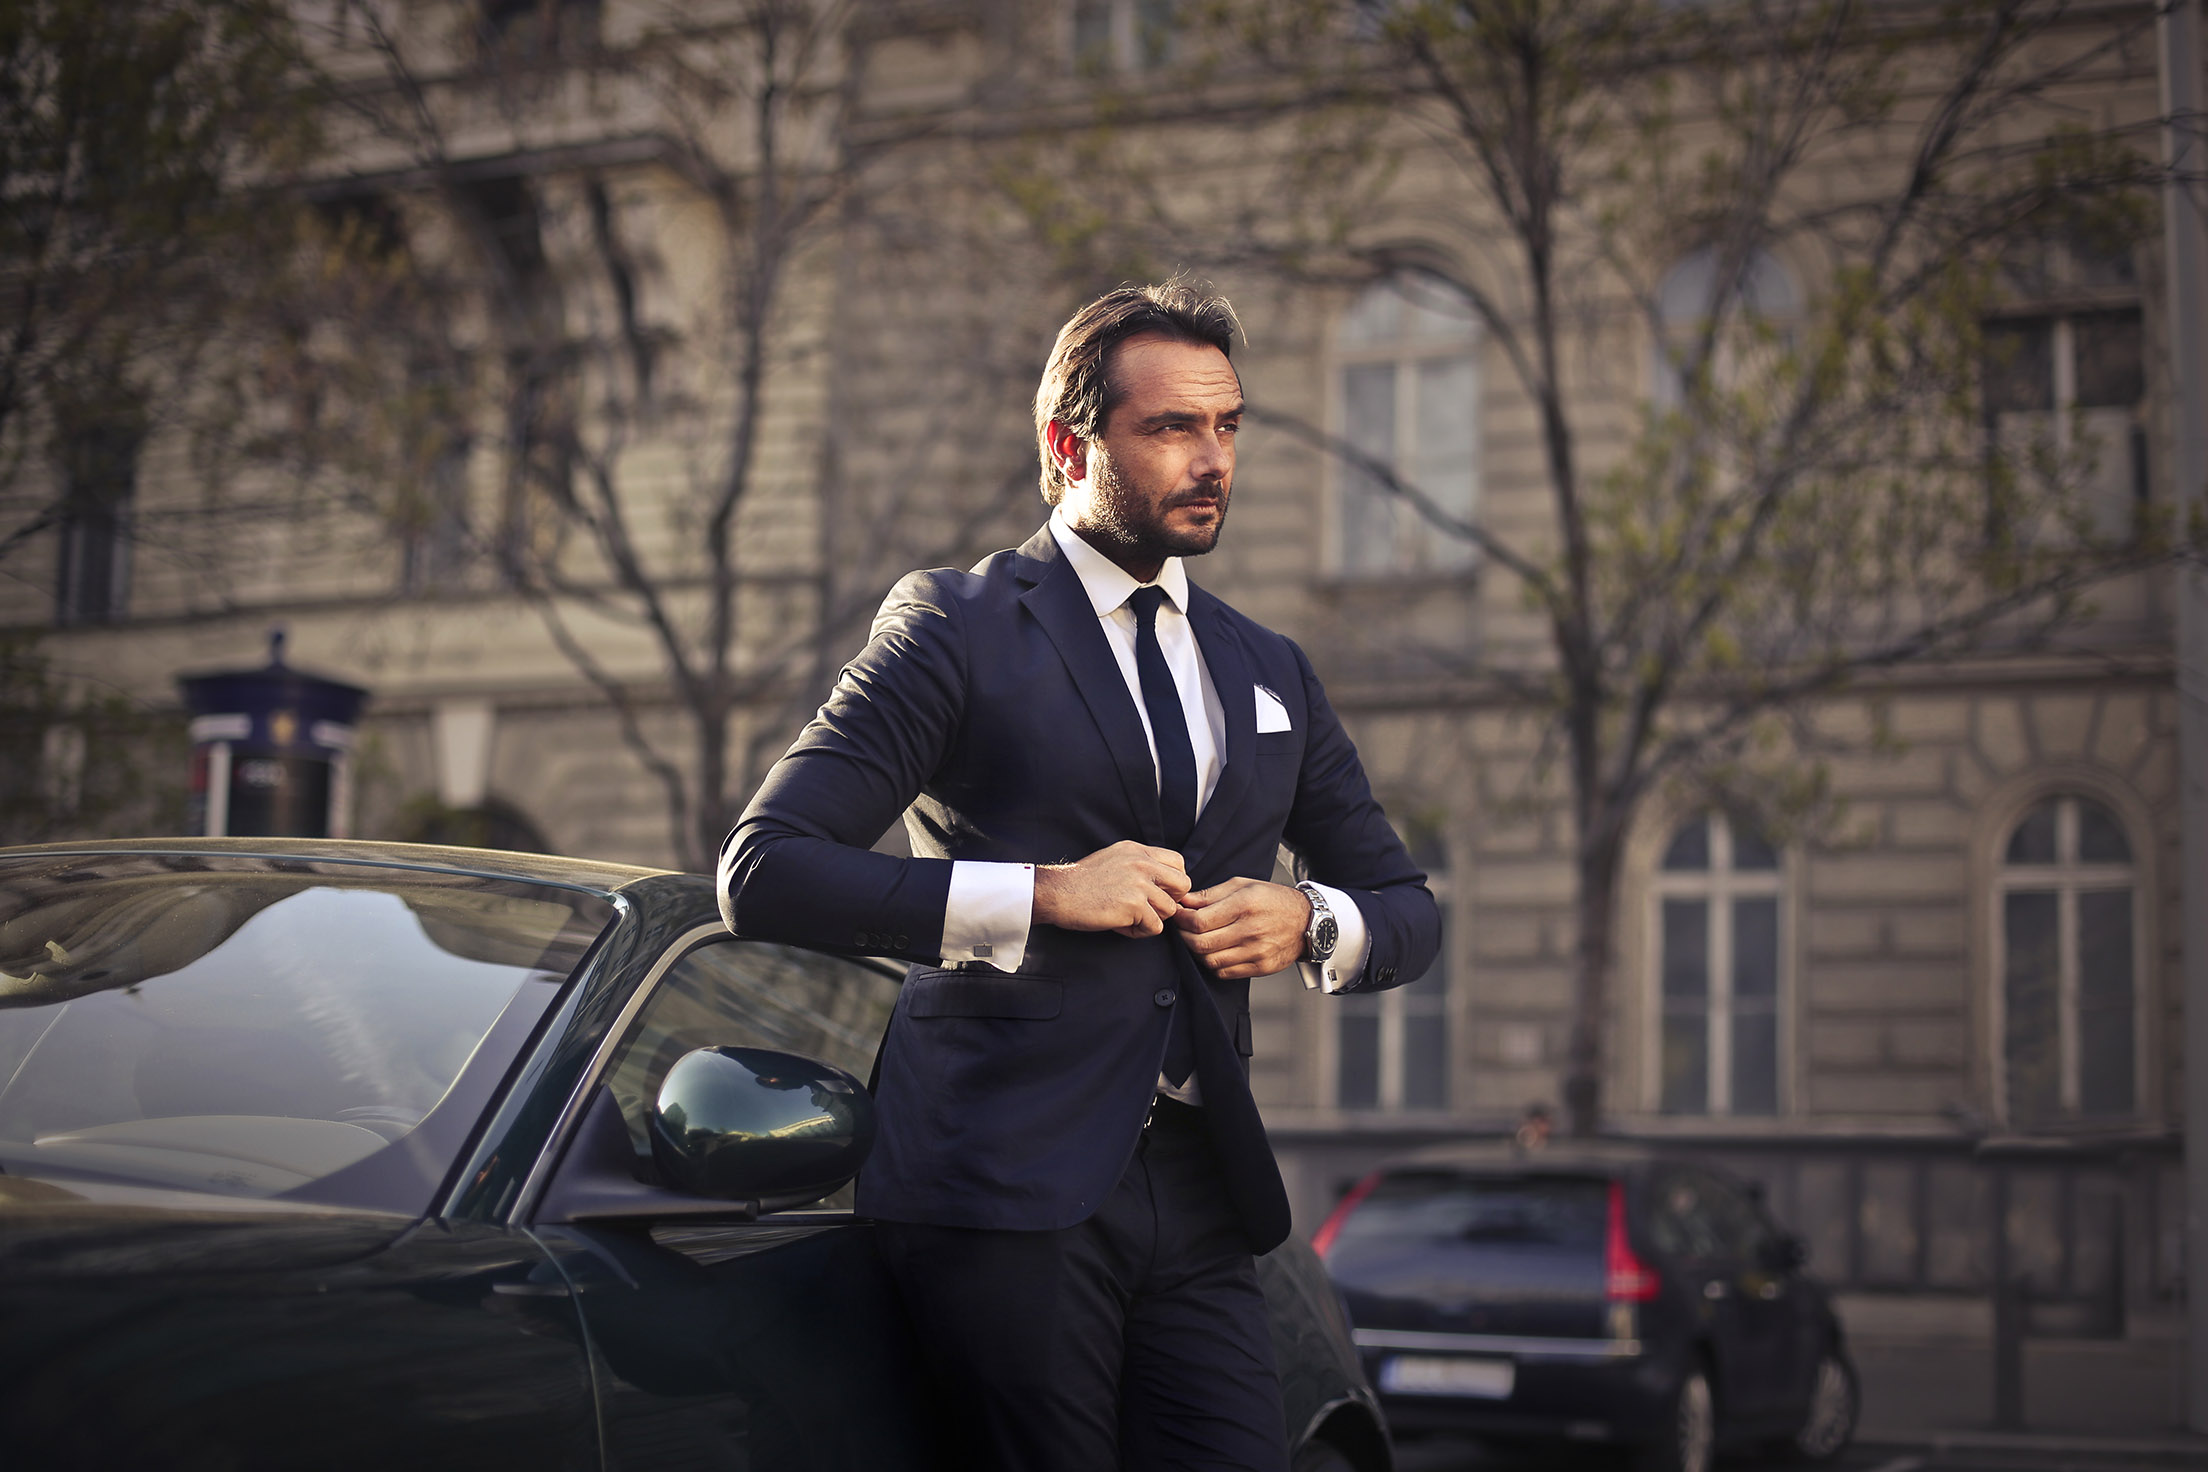 7 Essential Traits of the Elite and the Successful